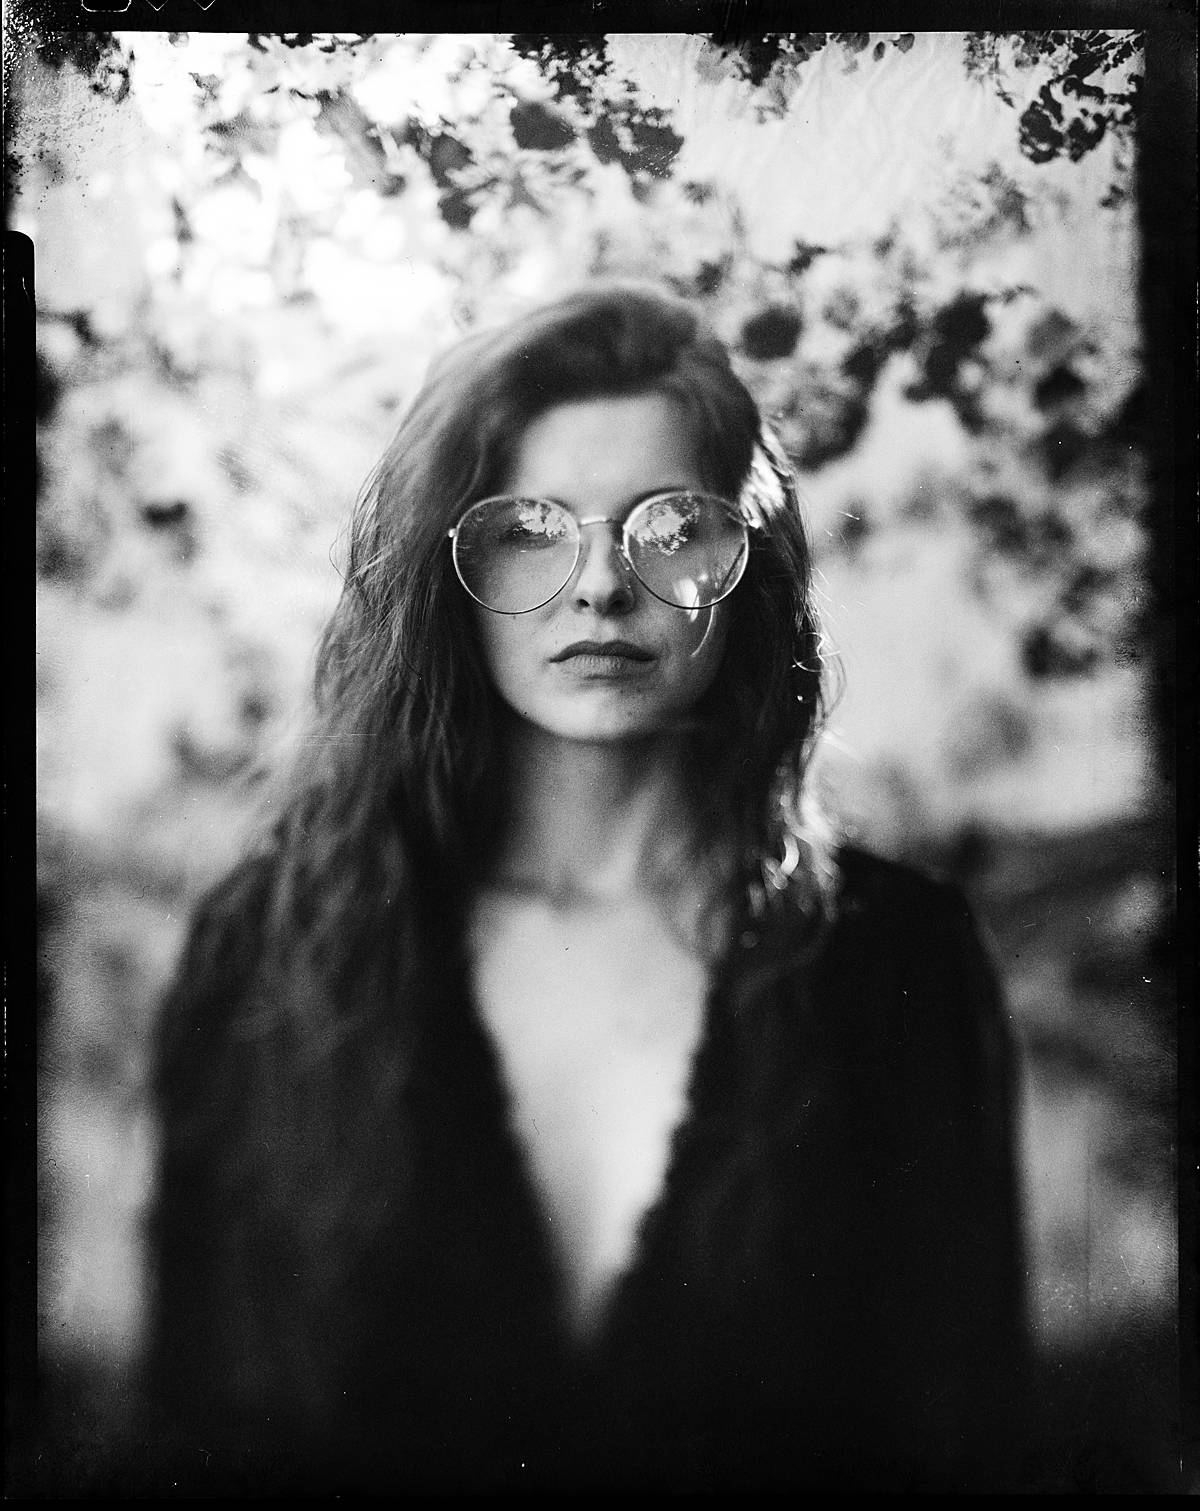 4x5 large format film portrait on black and white expired kodak t-max 400 film of a girl in black dress and sunglasses